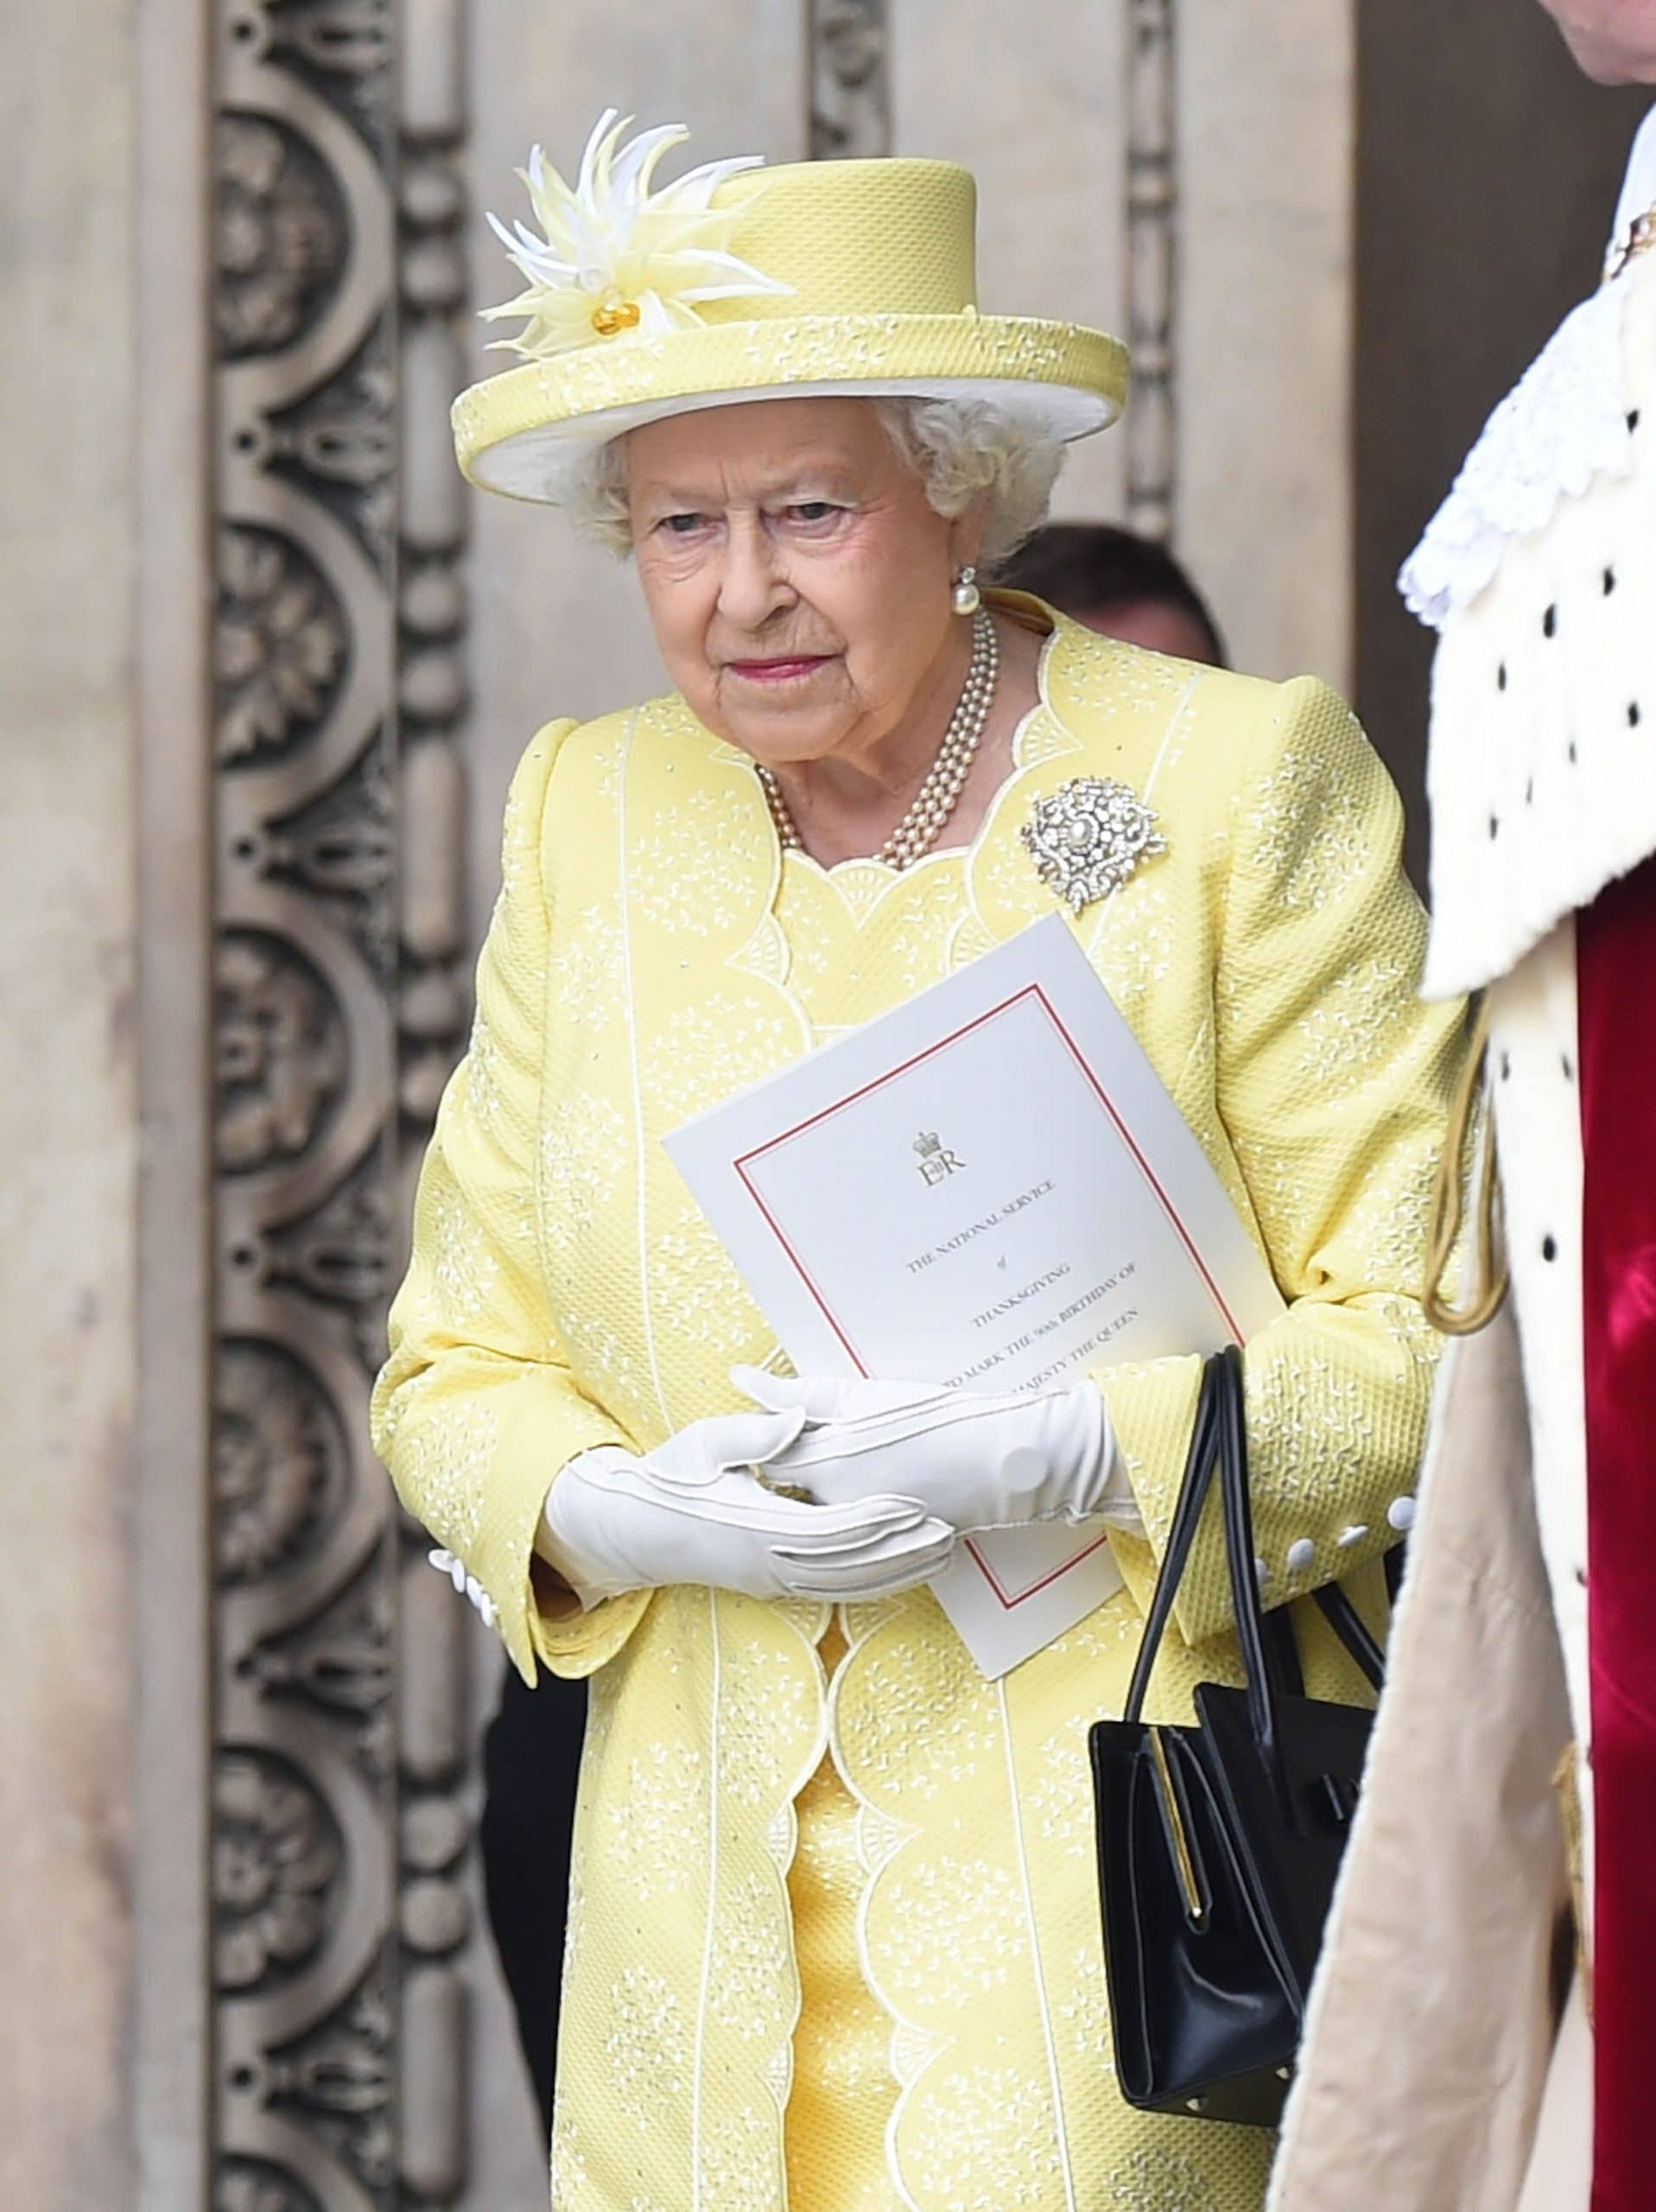 Queen Elizabeth To Speak With Royal Family Members After Meghan's Racism Claims